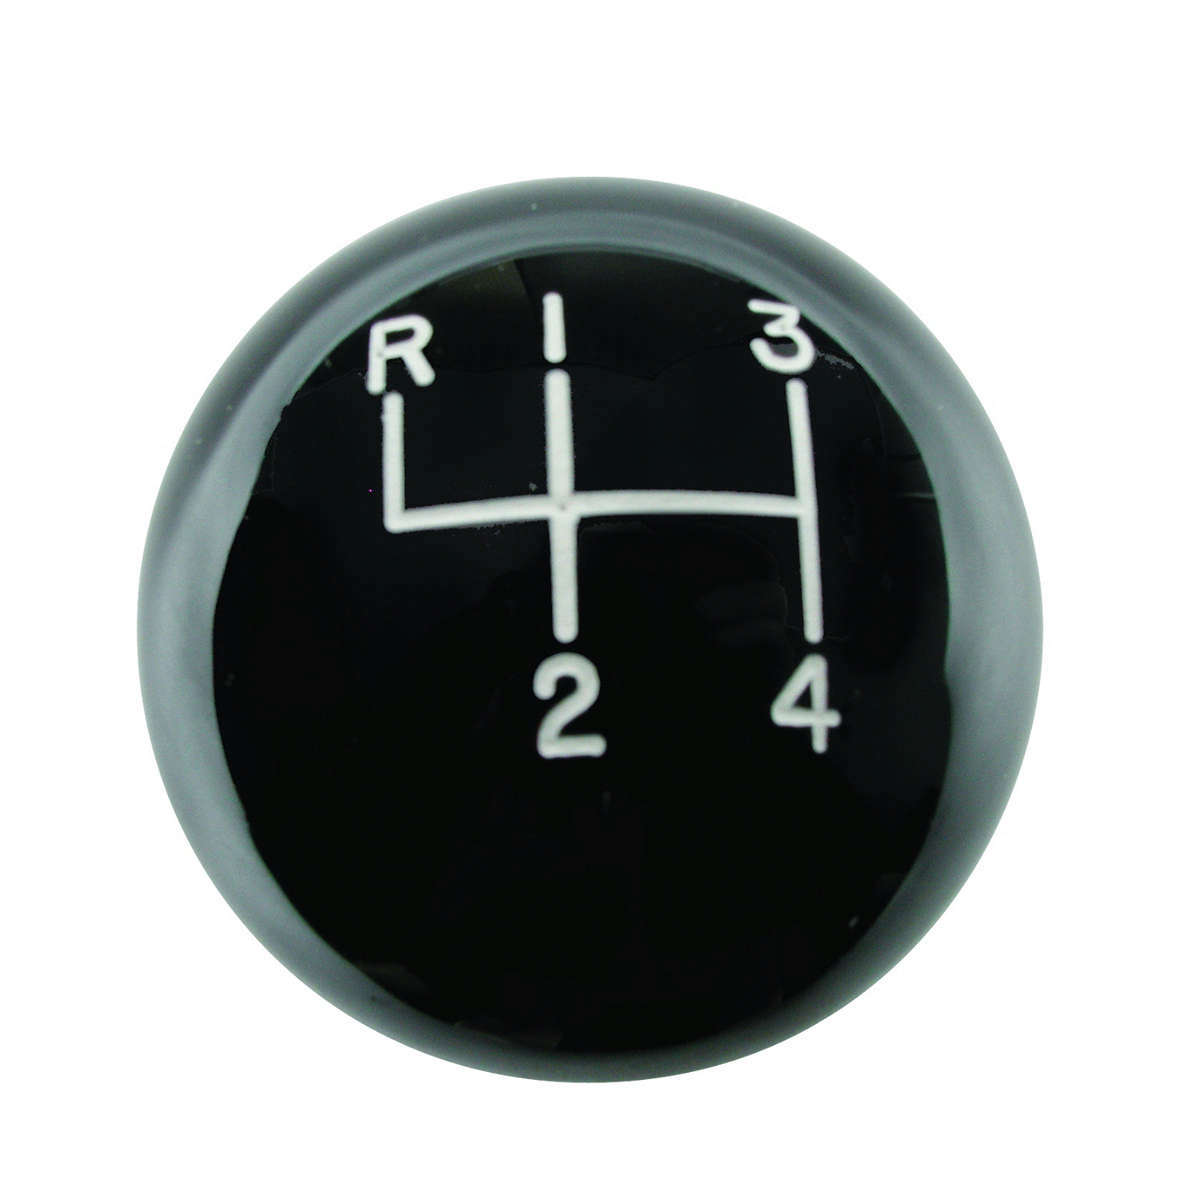 4-Speed Shifter Knob